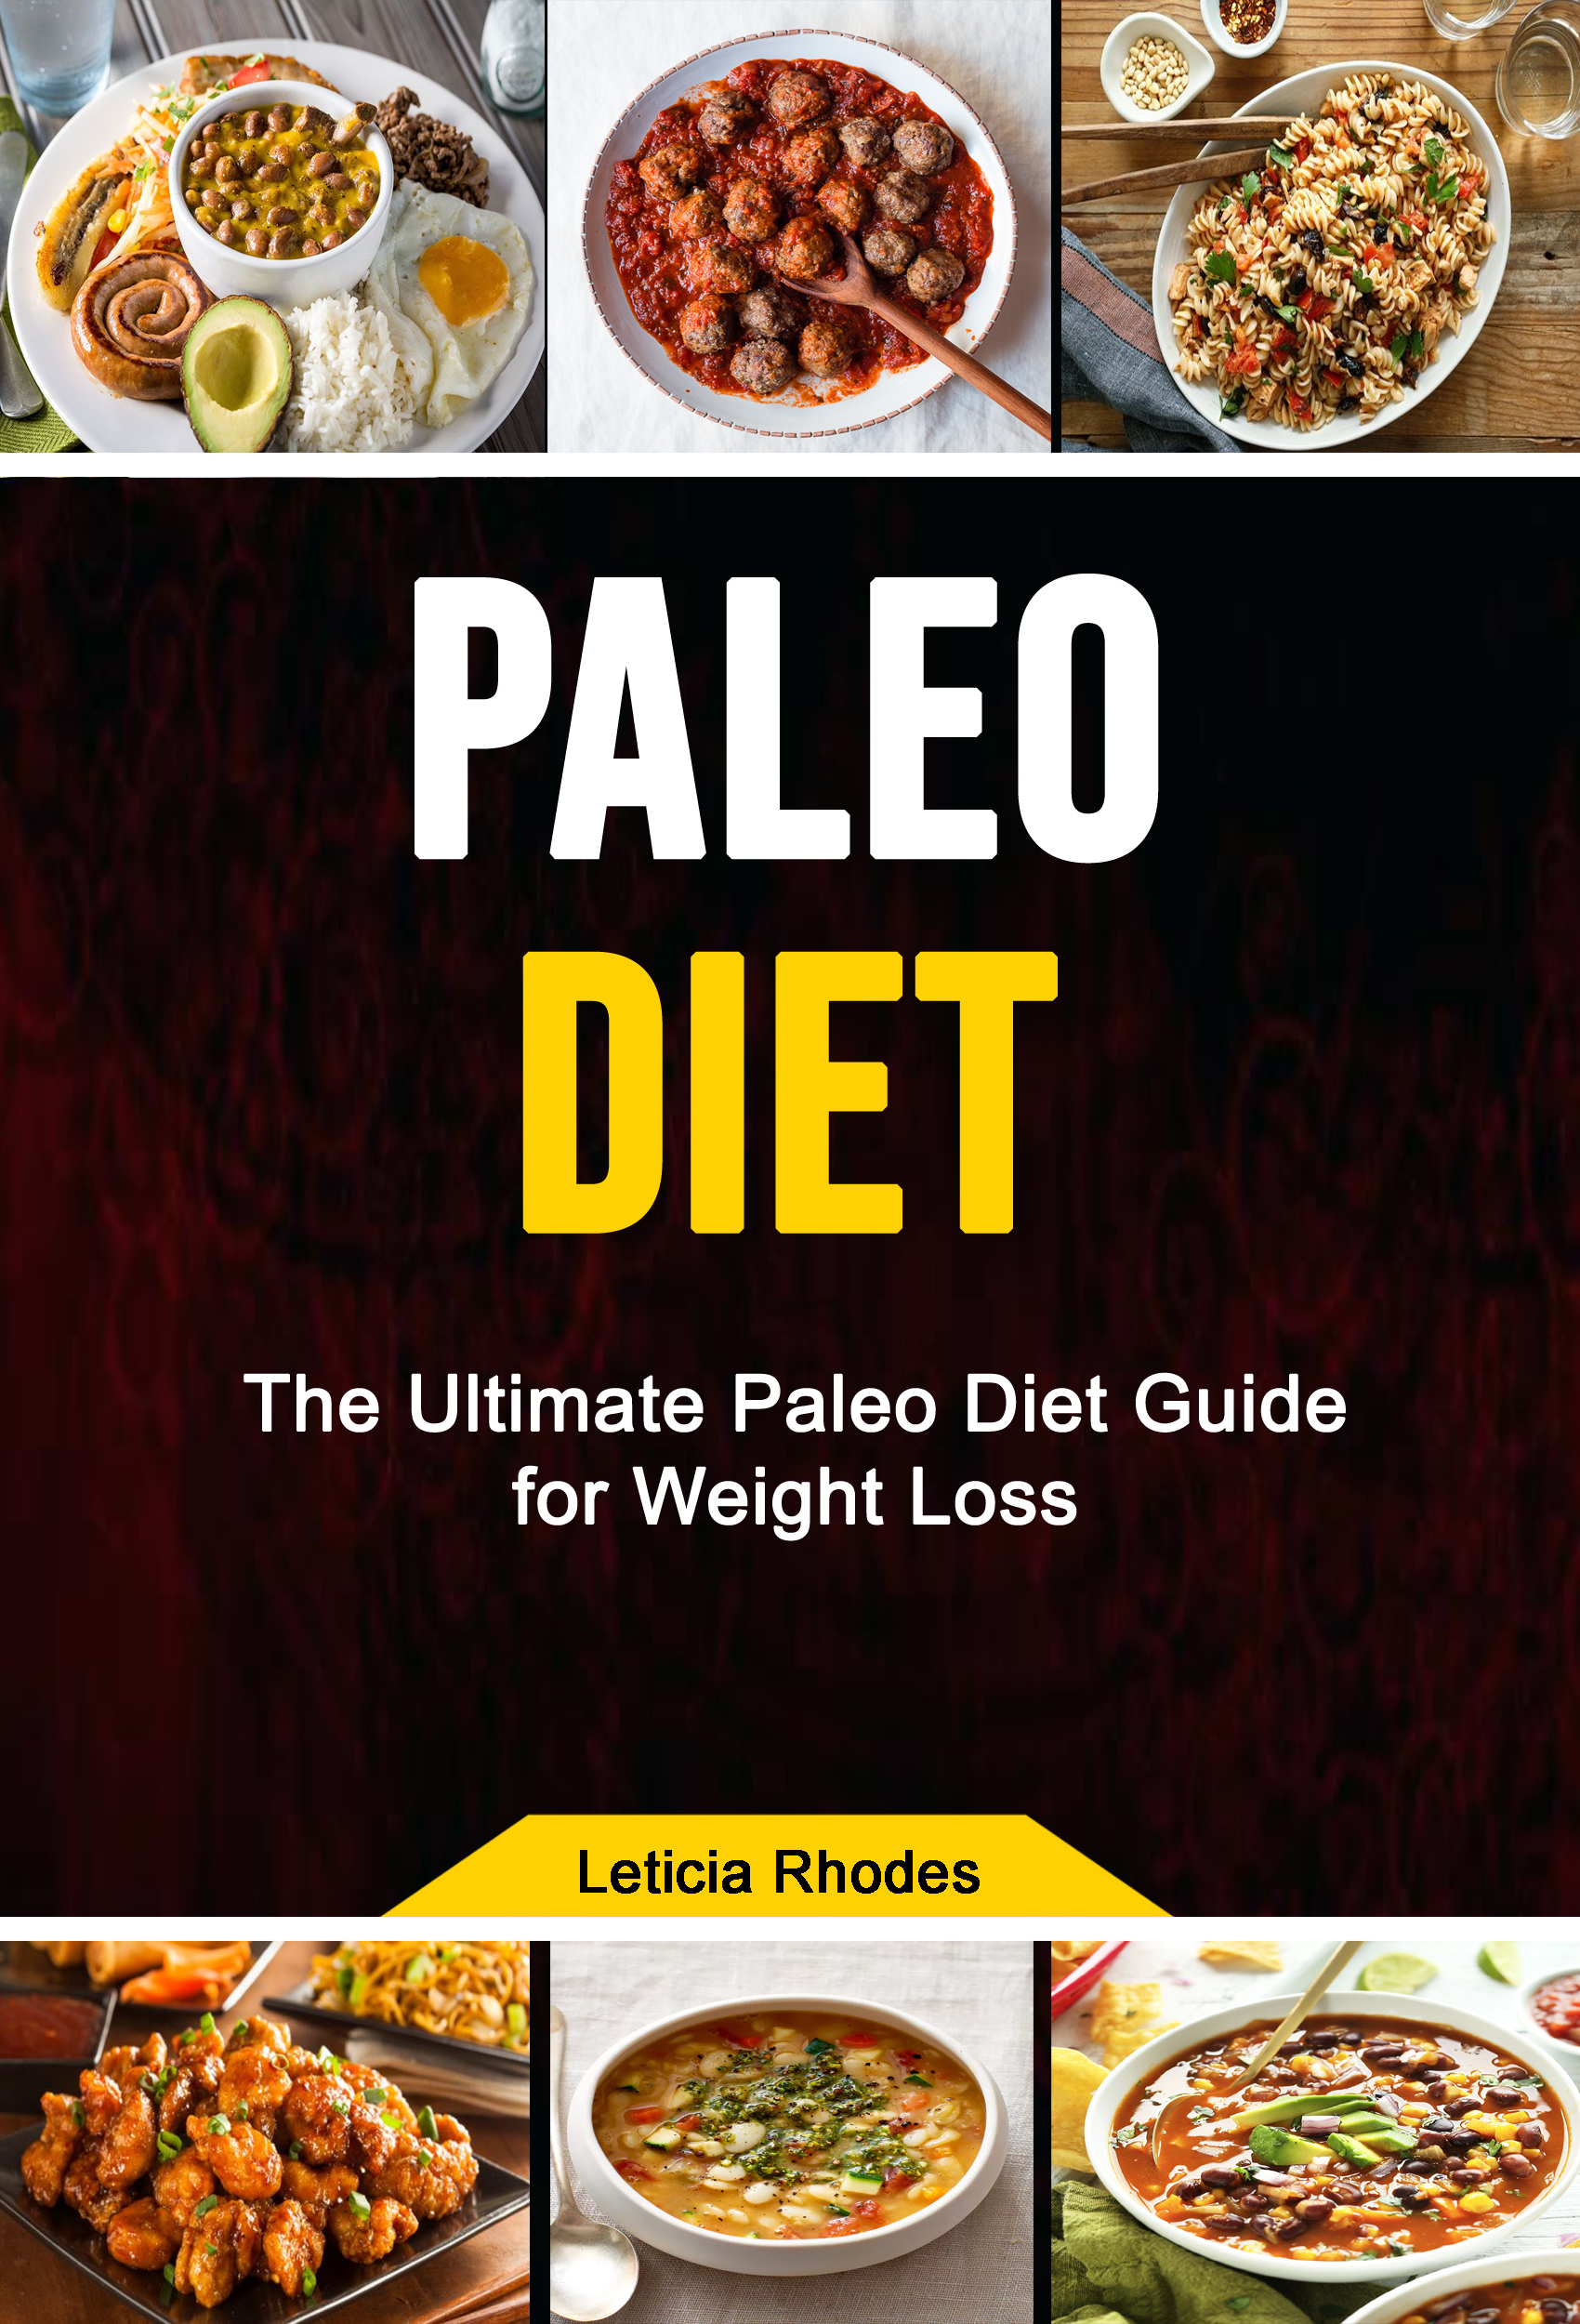 Paleo diet:  the ultimate paleo diet guide for weight loss